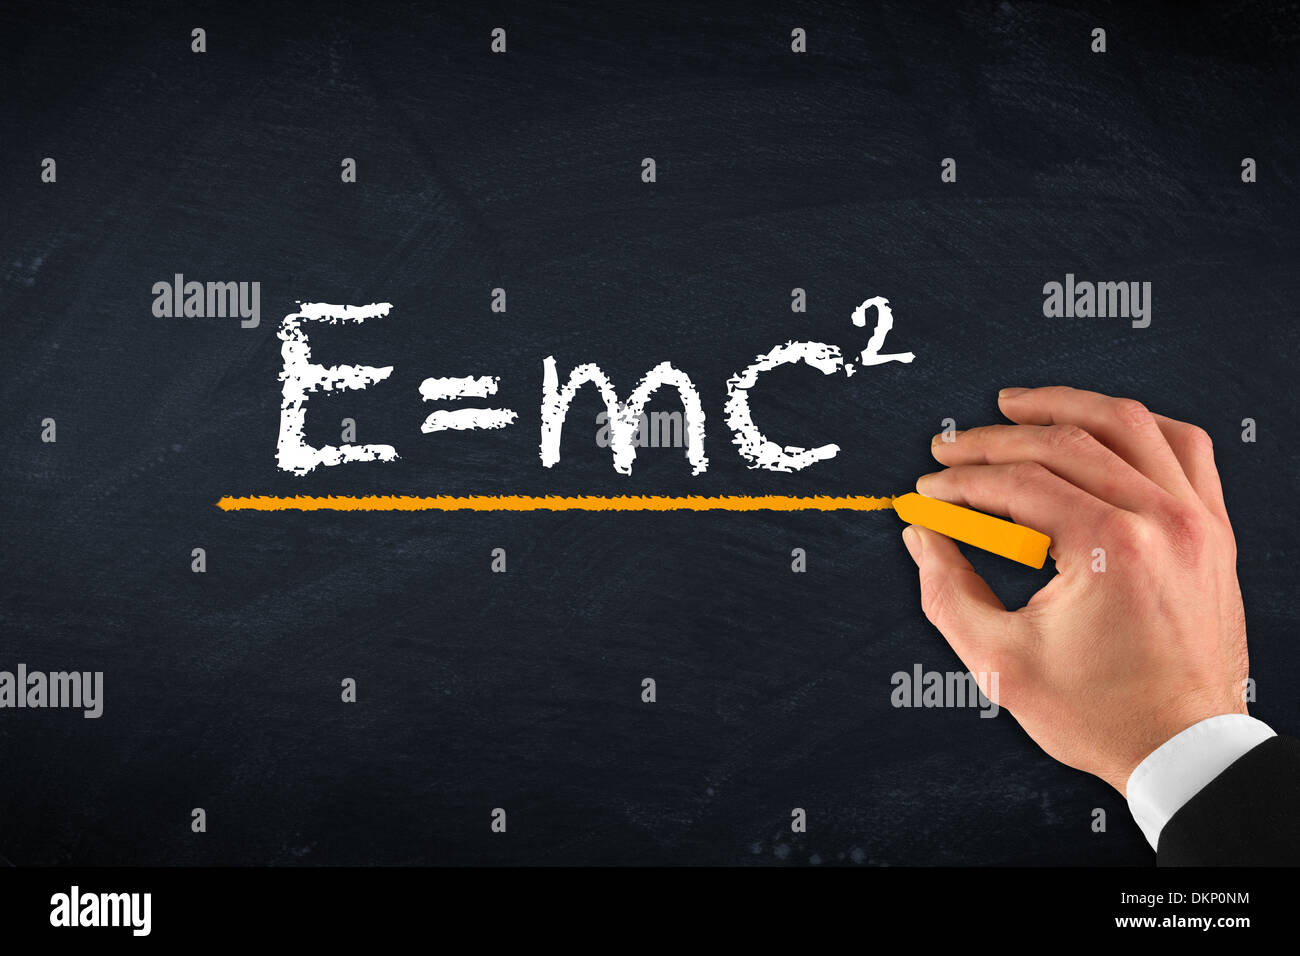 chalk board with hand and theory of relativity - Stock Image